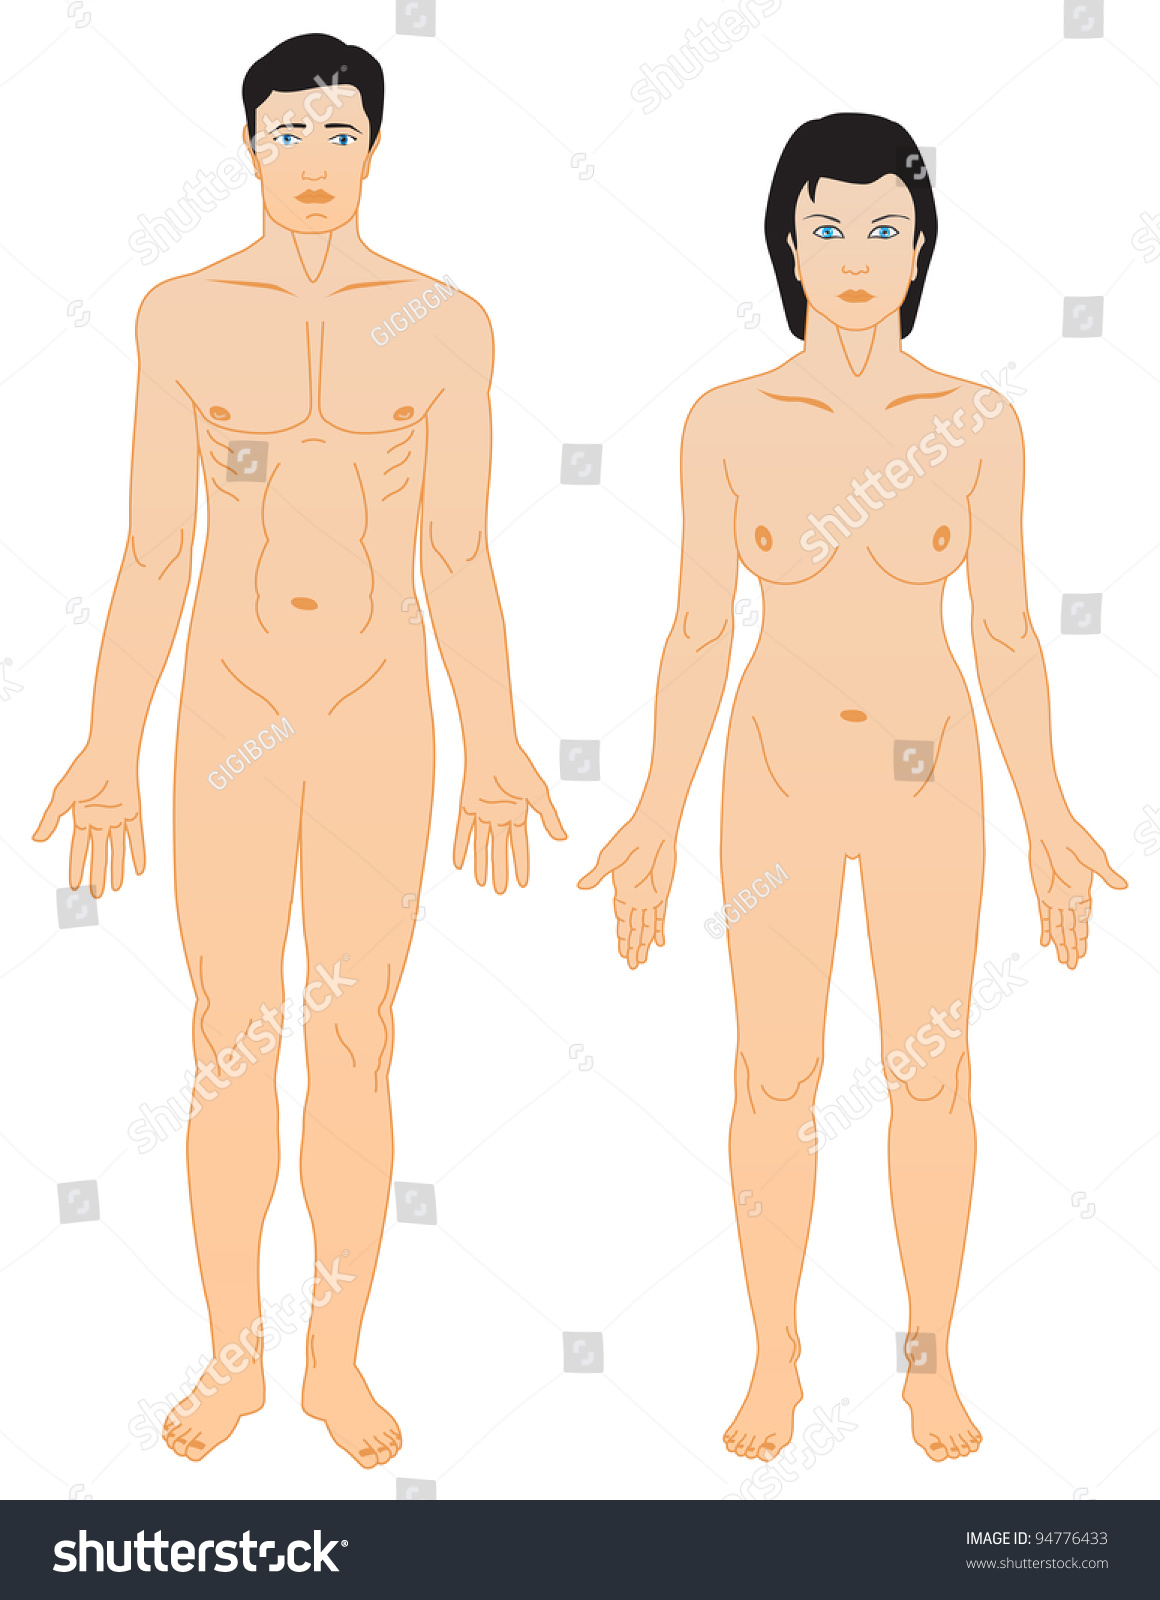 Man Woman Anatomy Stock Vector (Royalty Free) 94776433 - Shutterstock